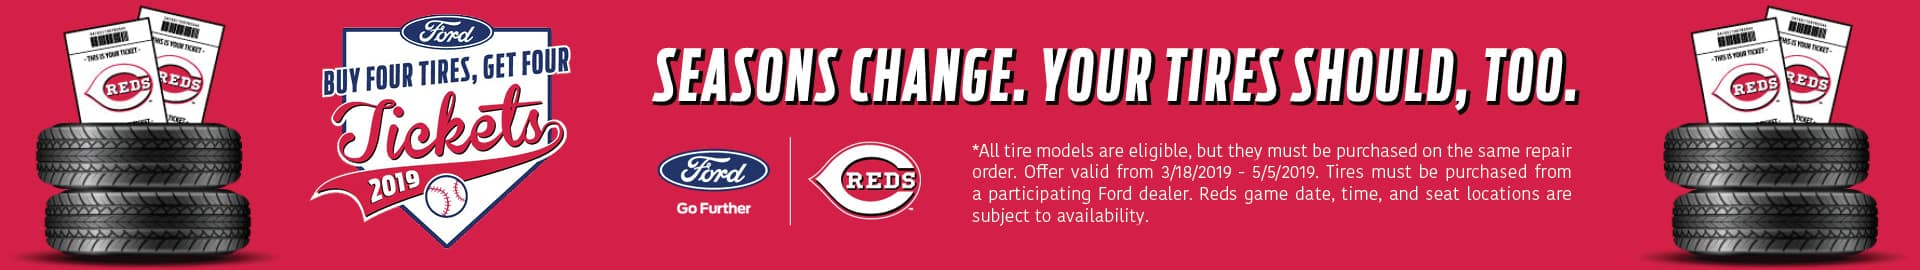 Kings Ford Offer for Four Free Reds Tickets on a purchase of Four Free Tires